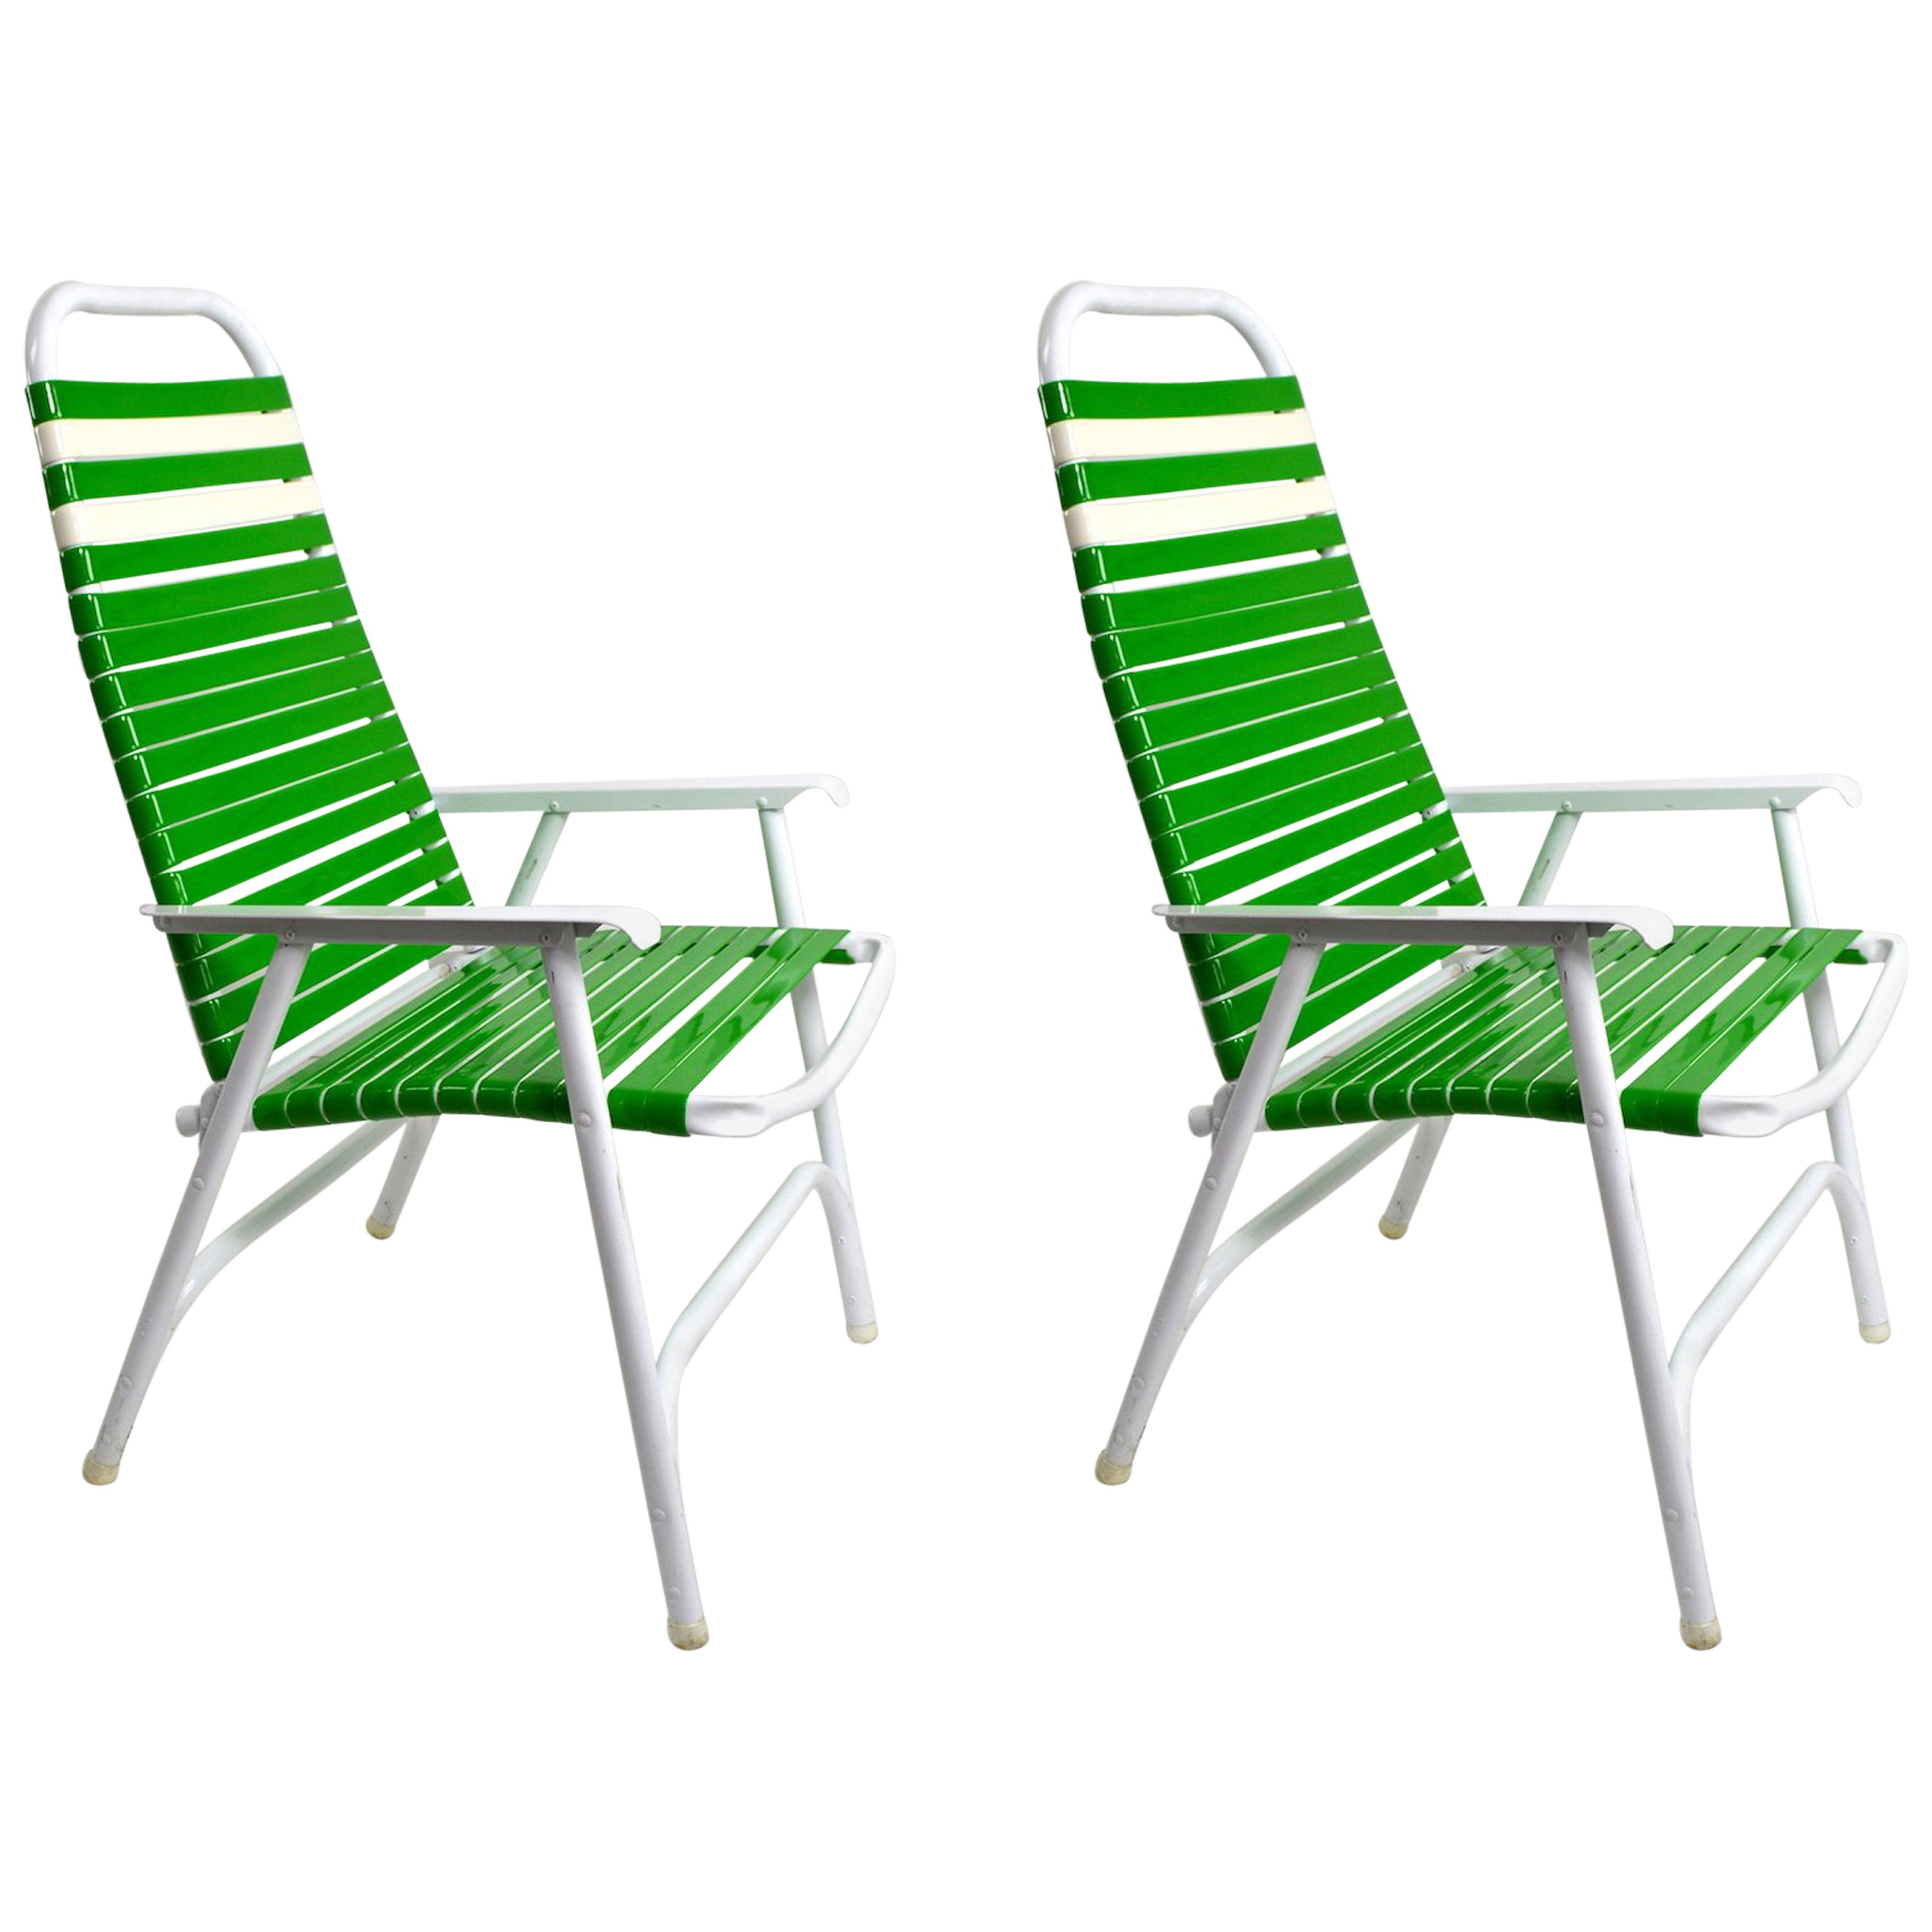 Pair Of Lawn Chairs By Telescope Furniture Company For Sale At 1stdibs